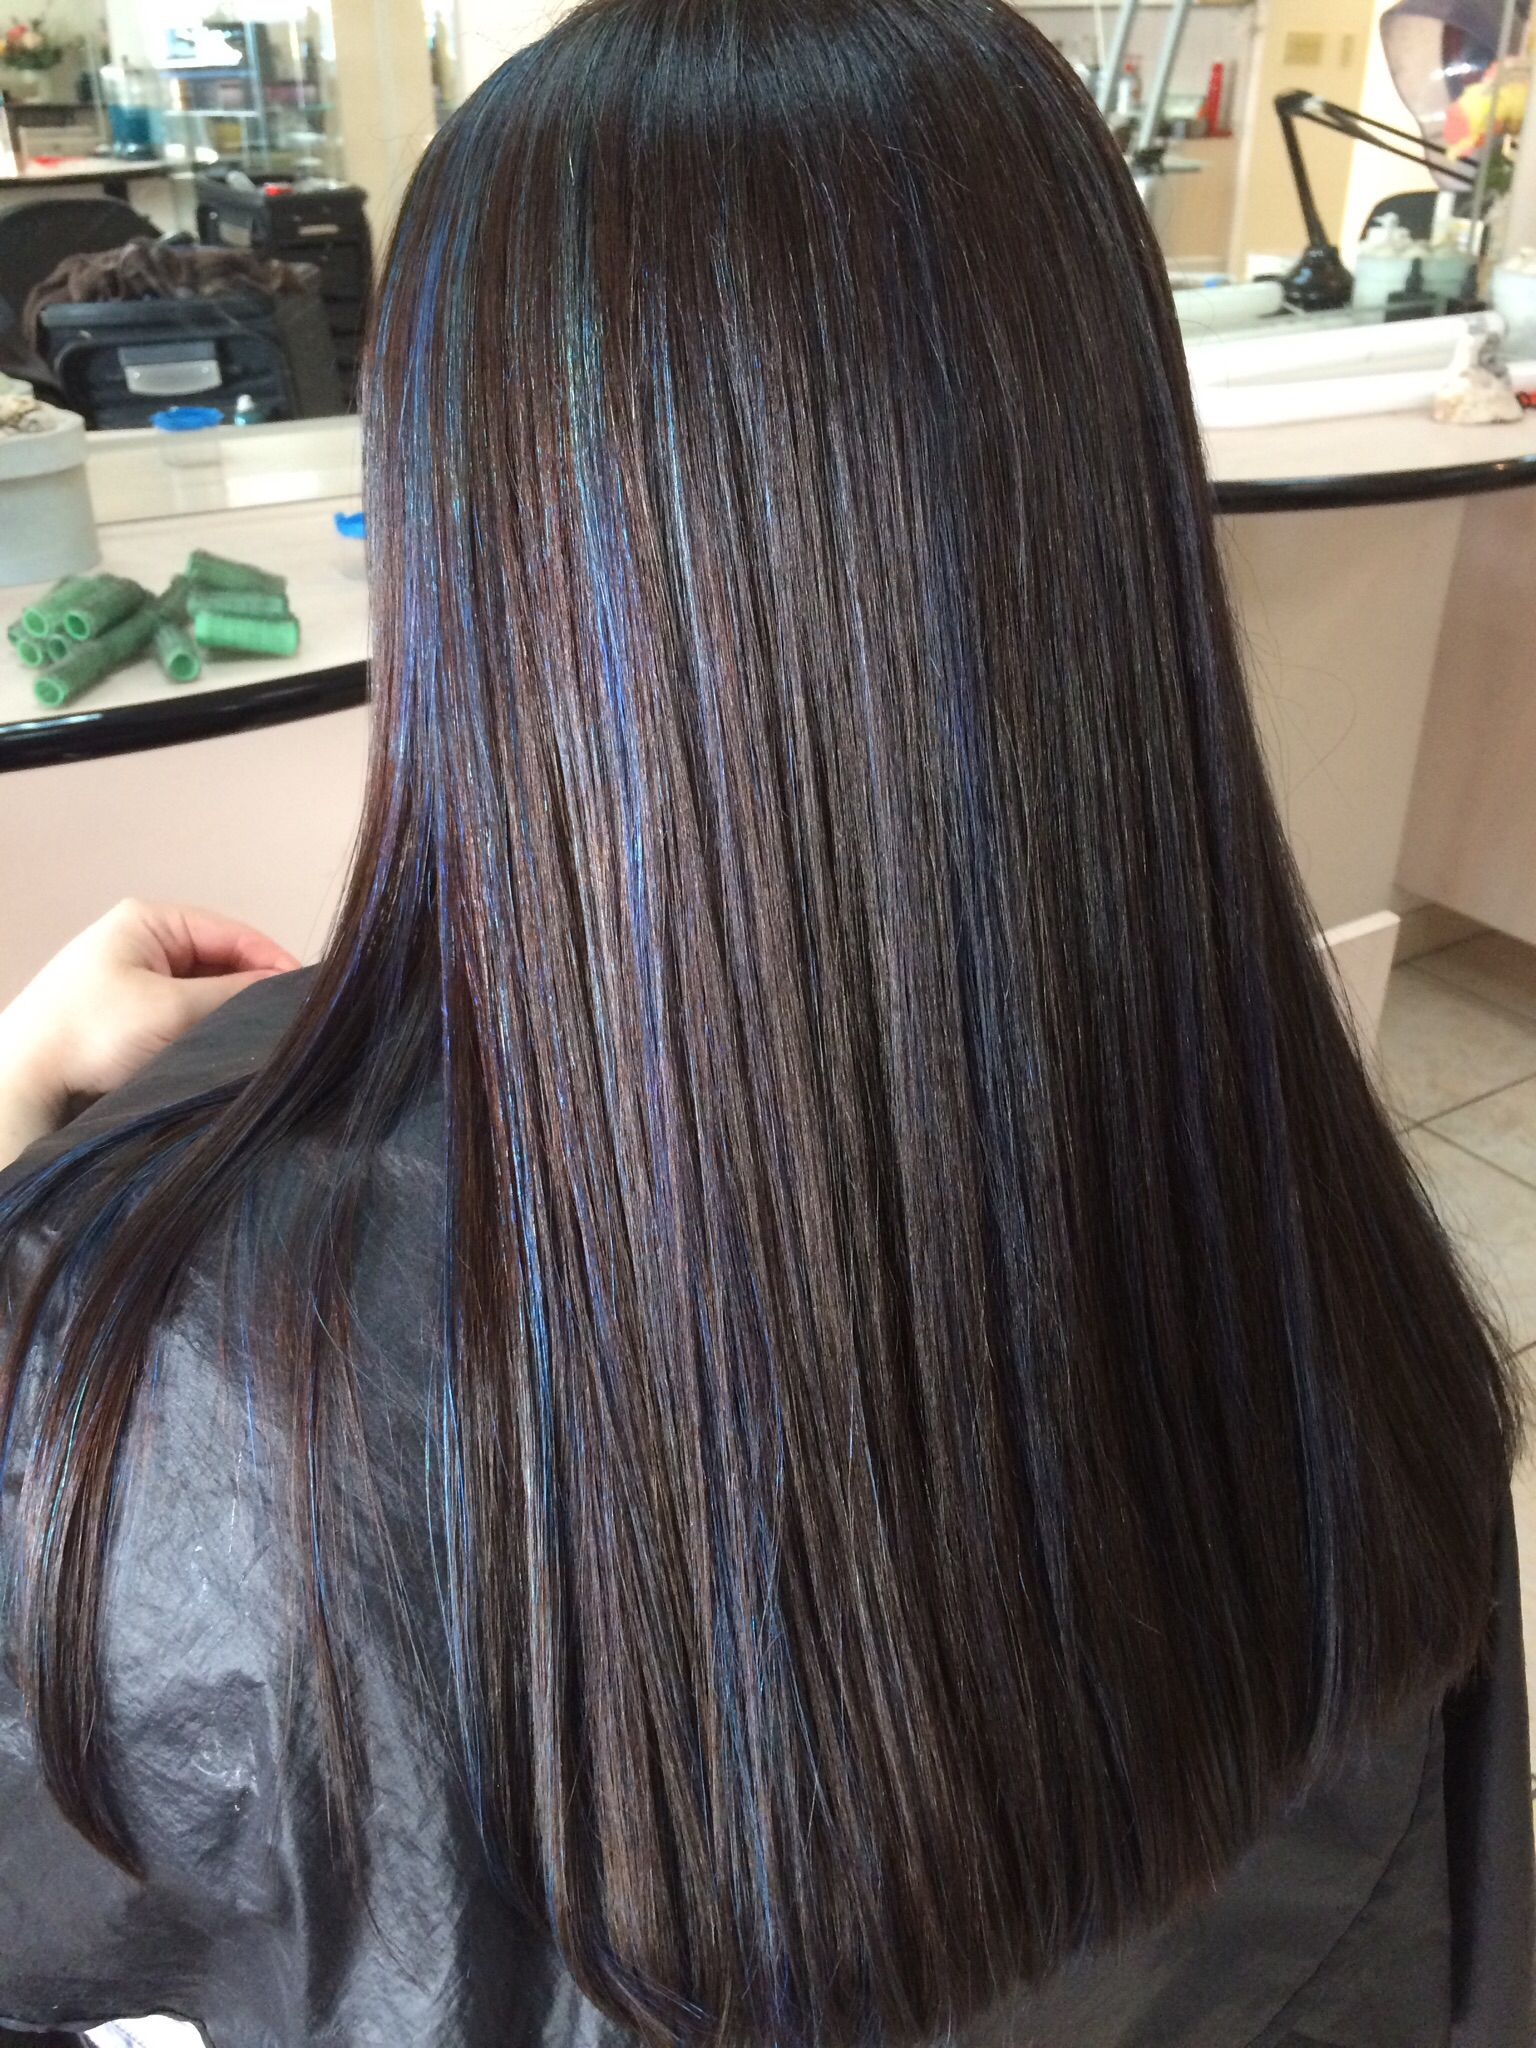 Dark brown hair with blue highlights Hair ideas Pinterest